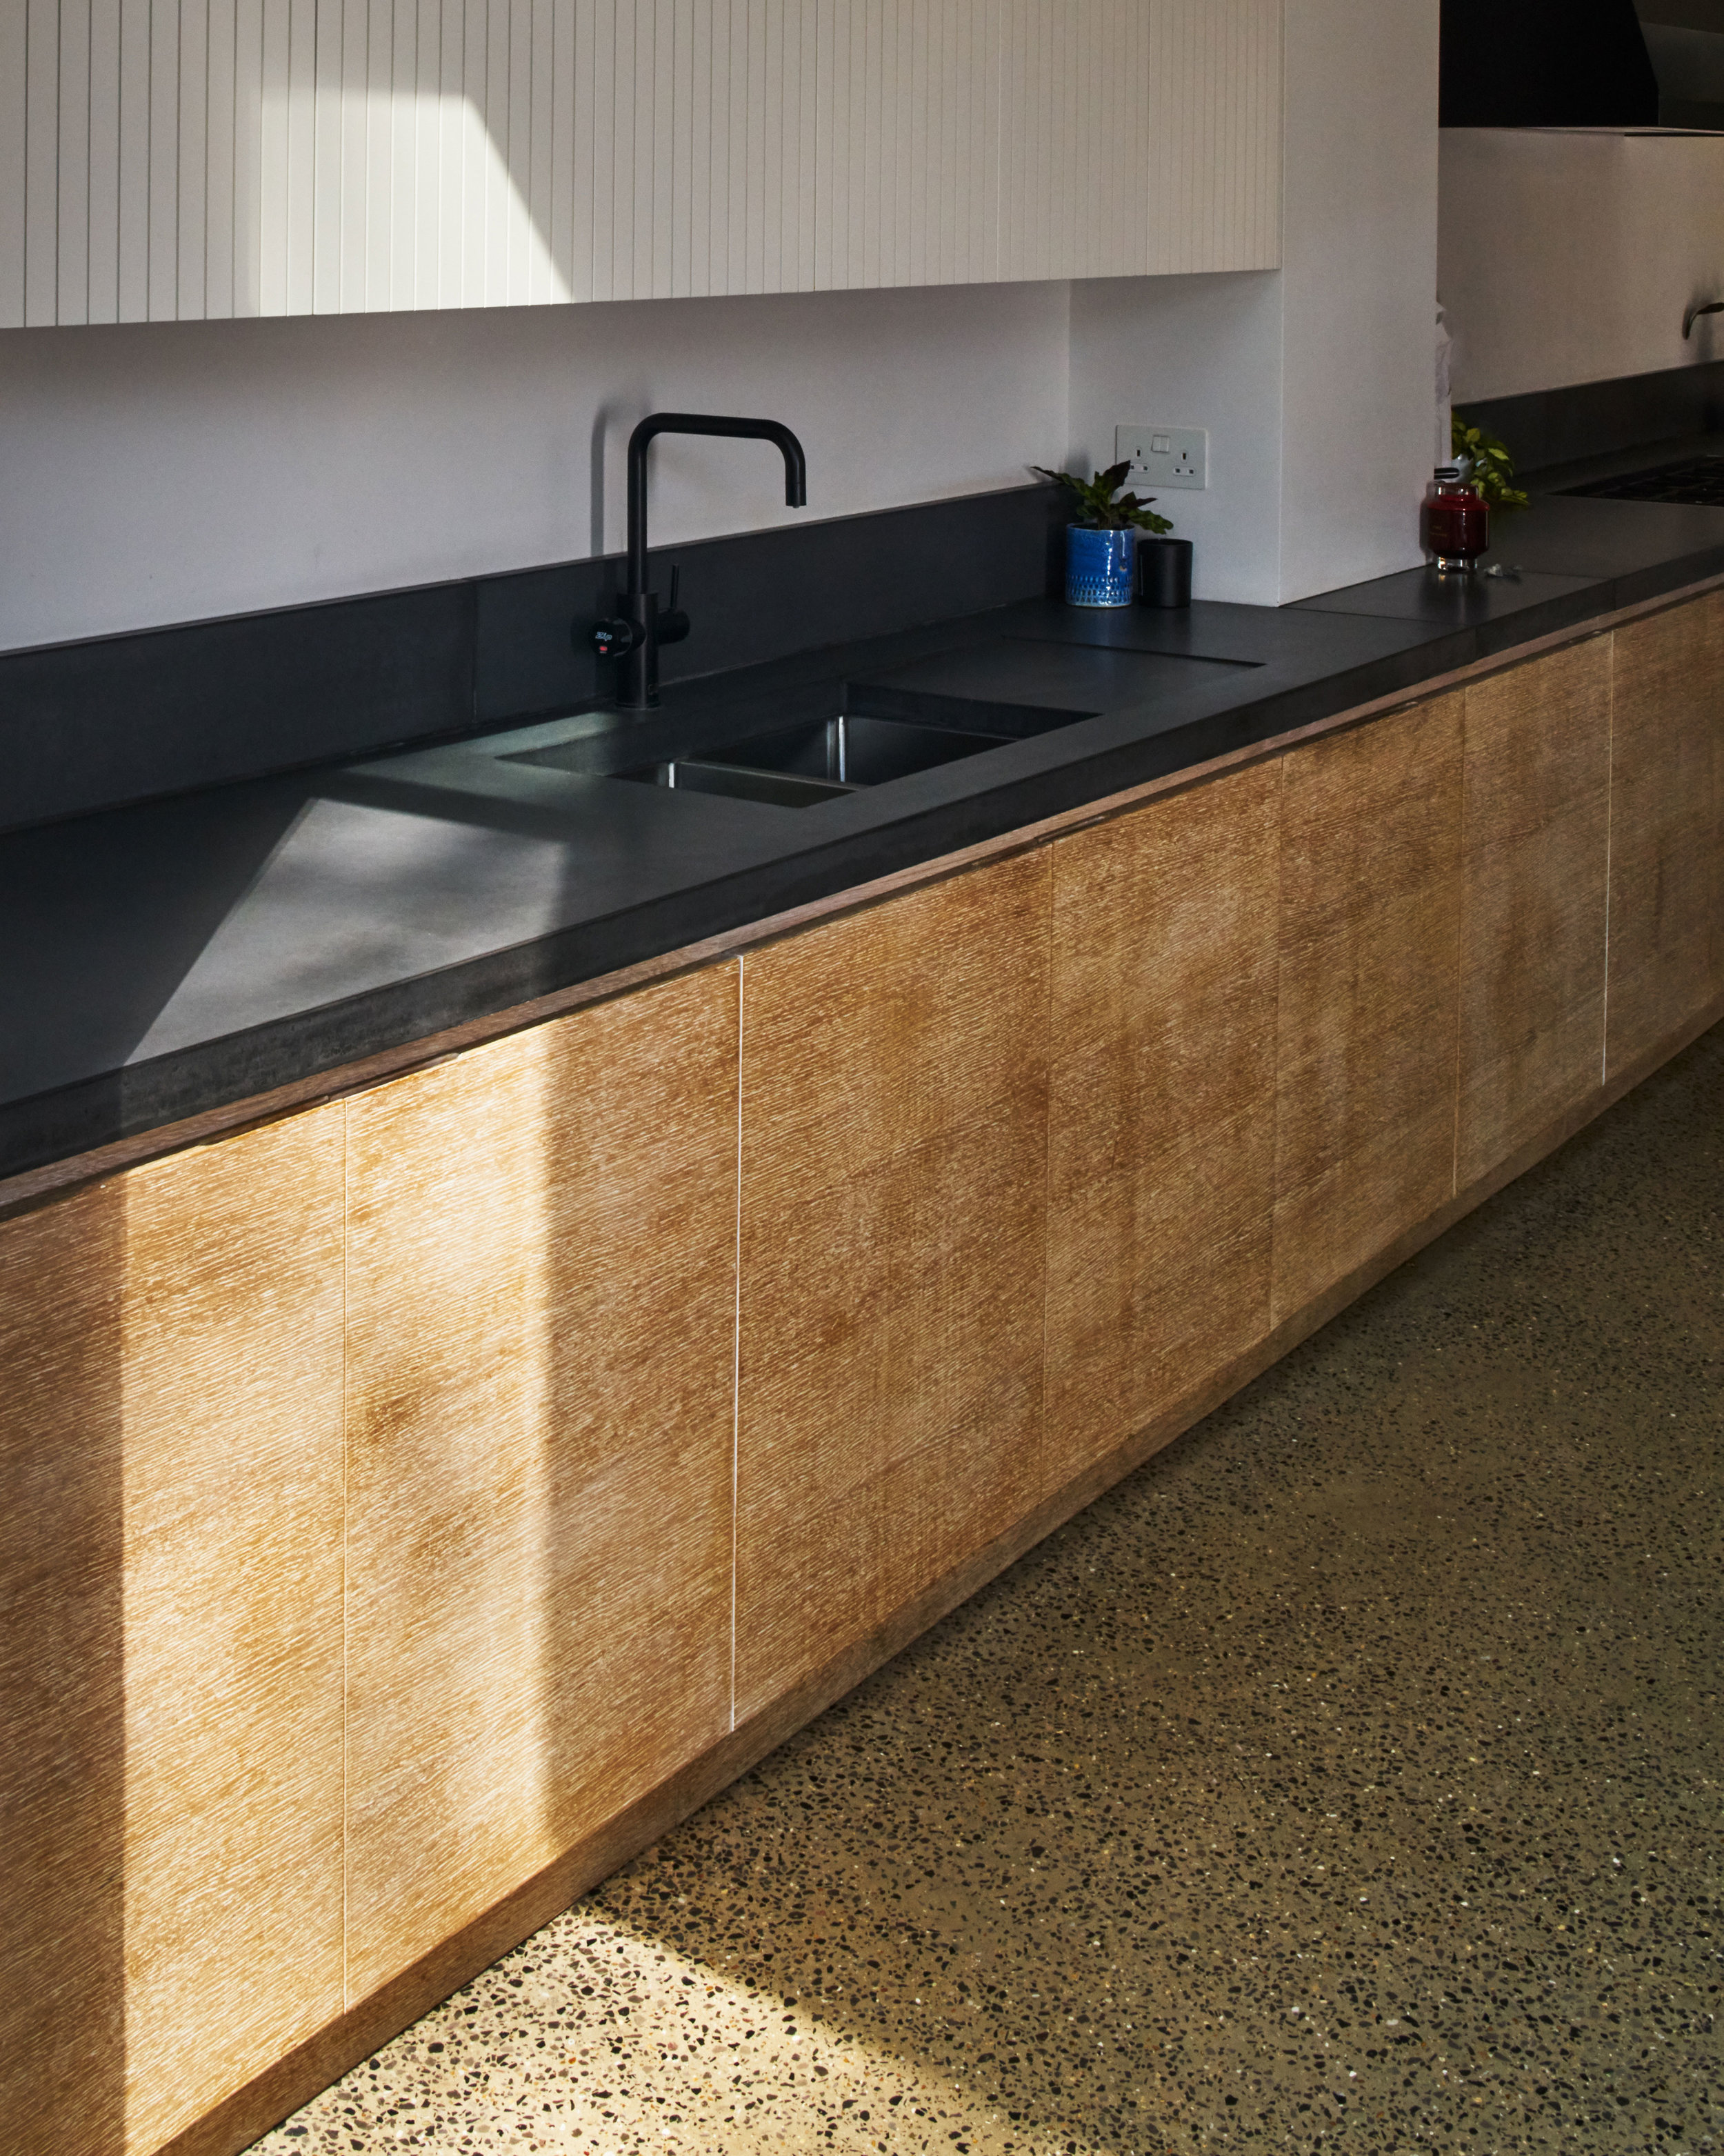 Black Corain work top with wooden kitchen cupboards